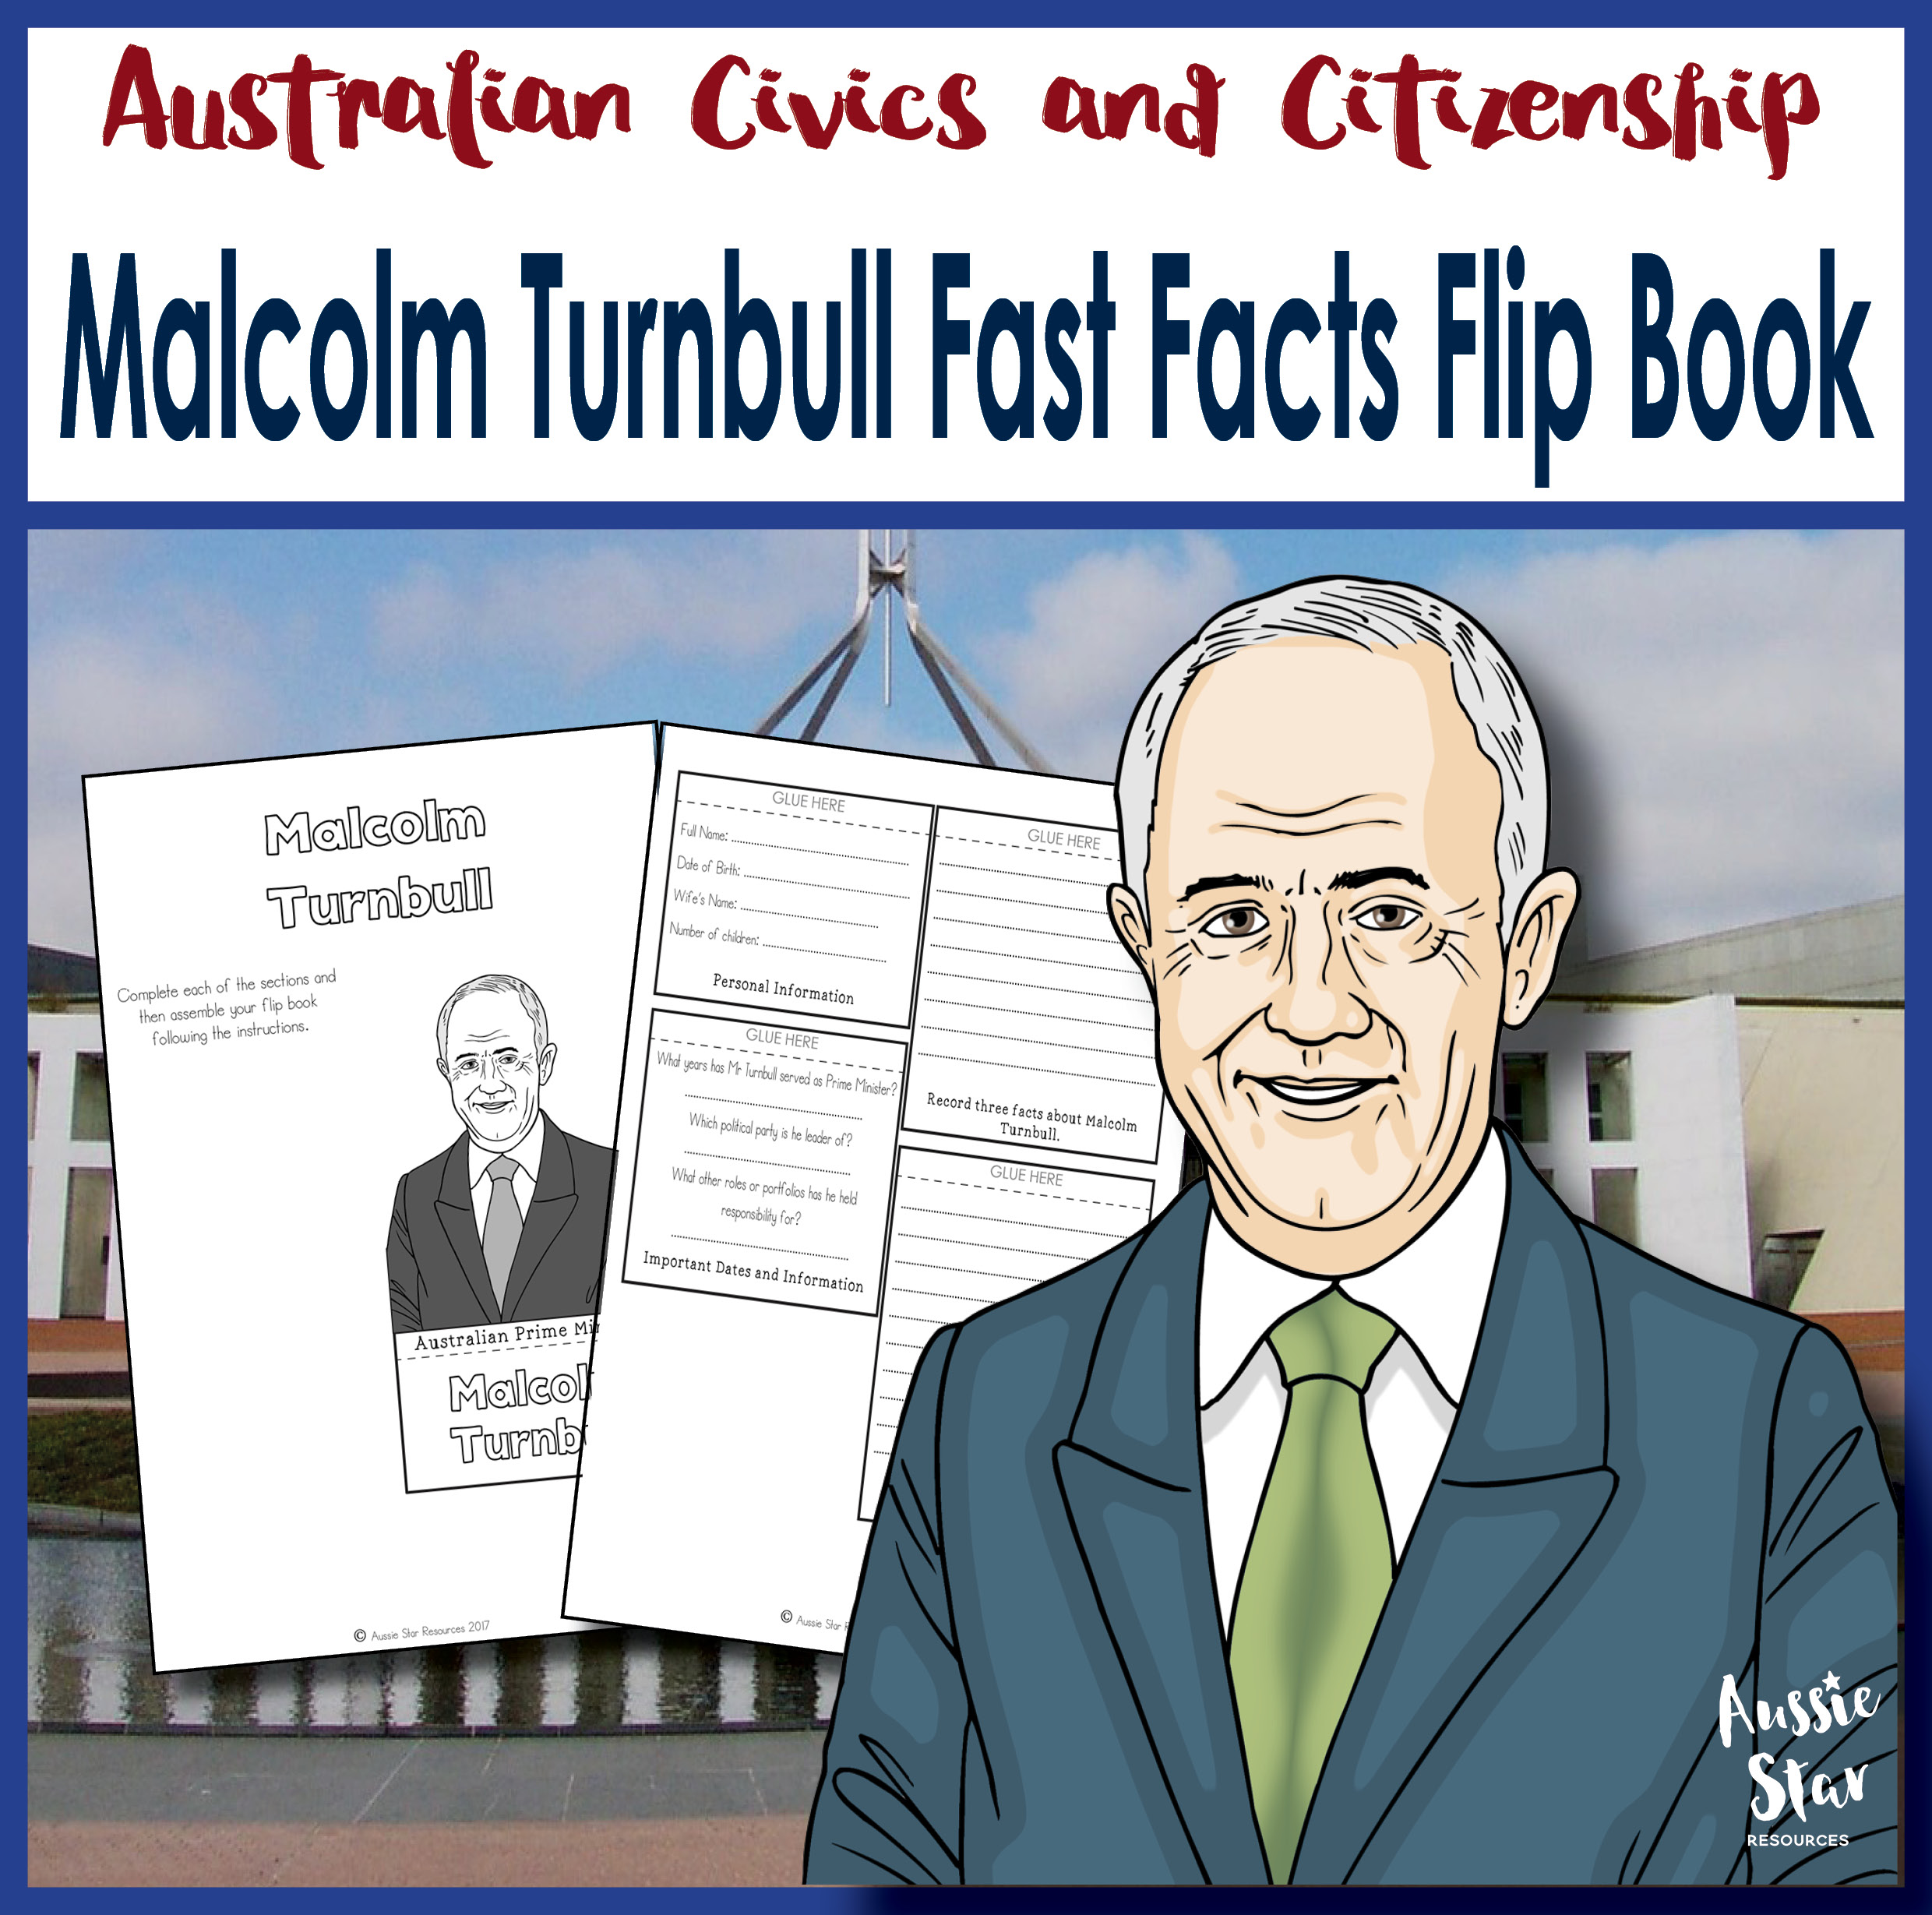 Malcolm Turnbull fast facts flip book cover